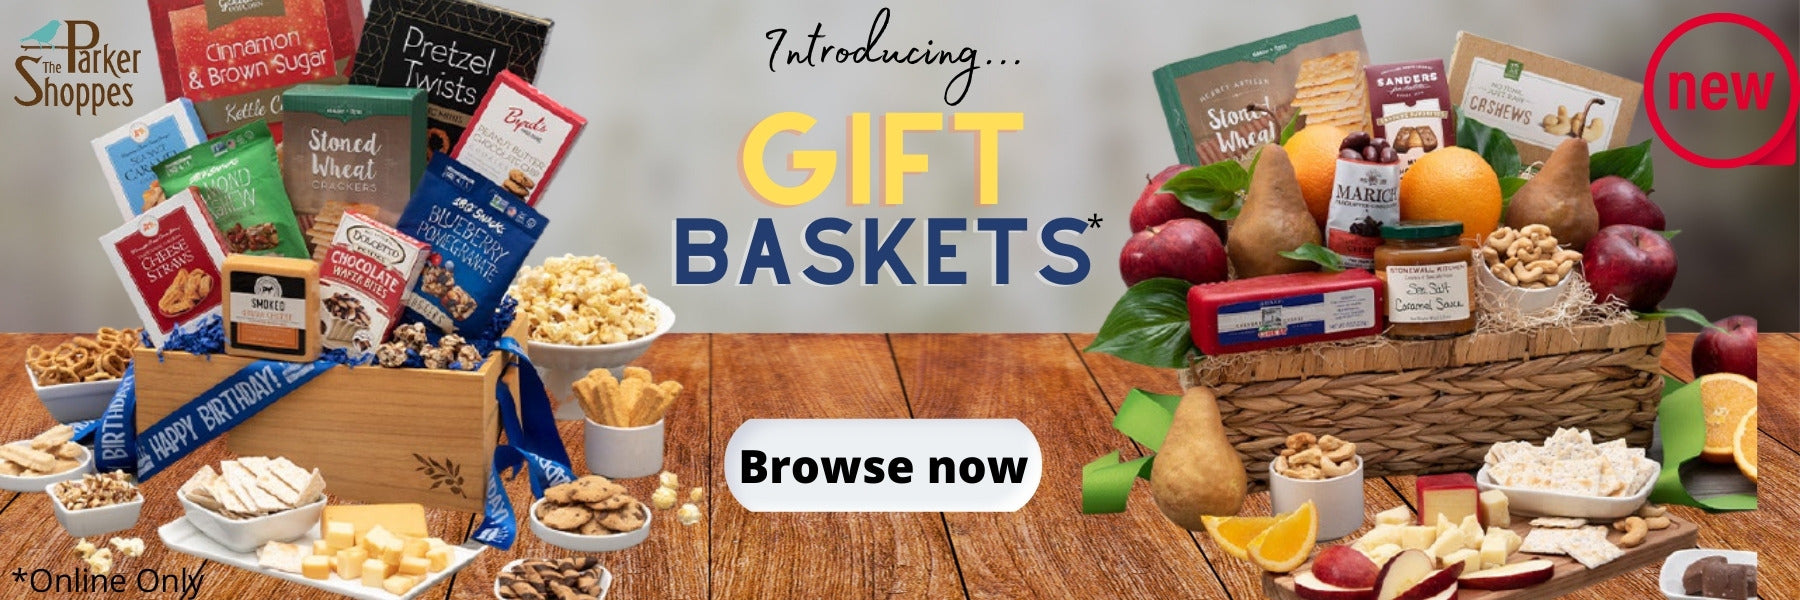 Gourmet Food Gift Baskets at The Parker Shoppes